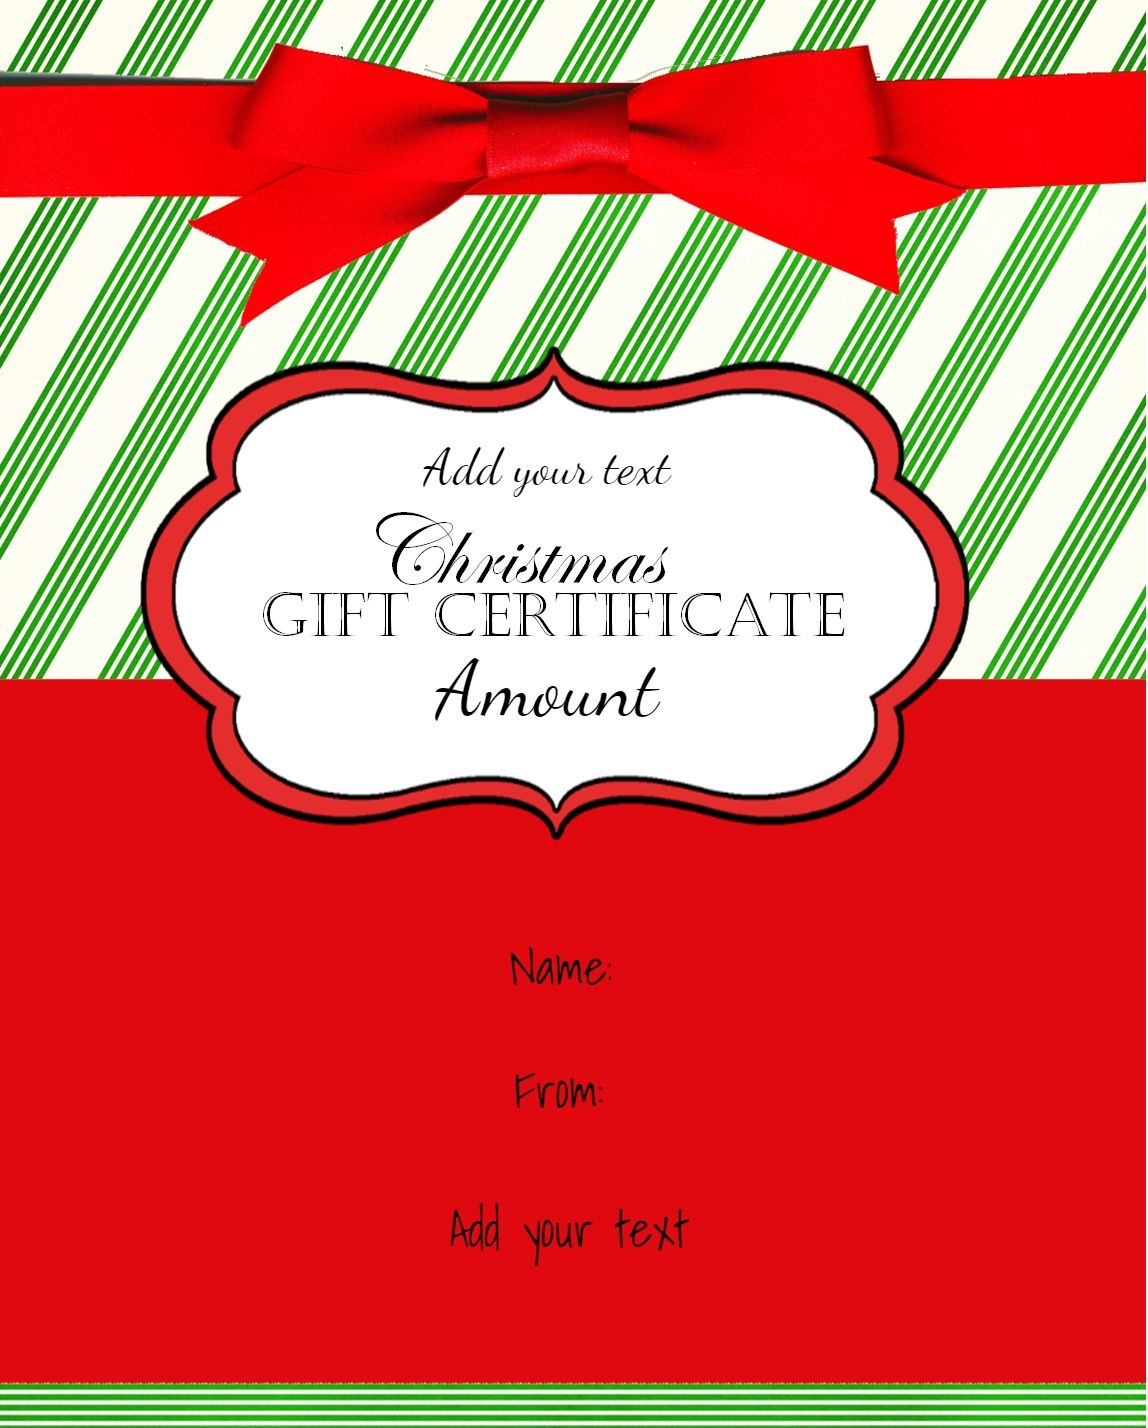 ChristmasGiftCertificateTemplateJpg   Gift